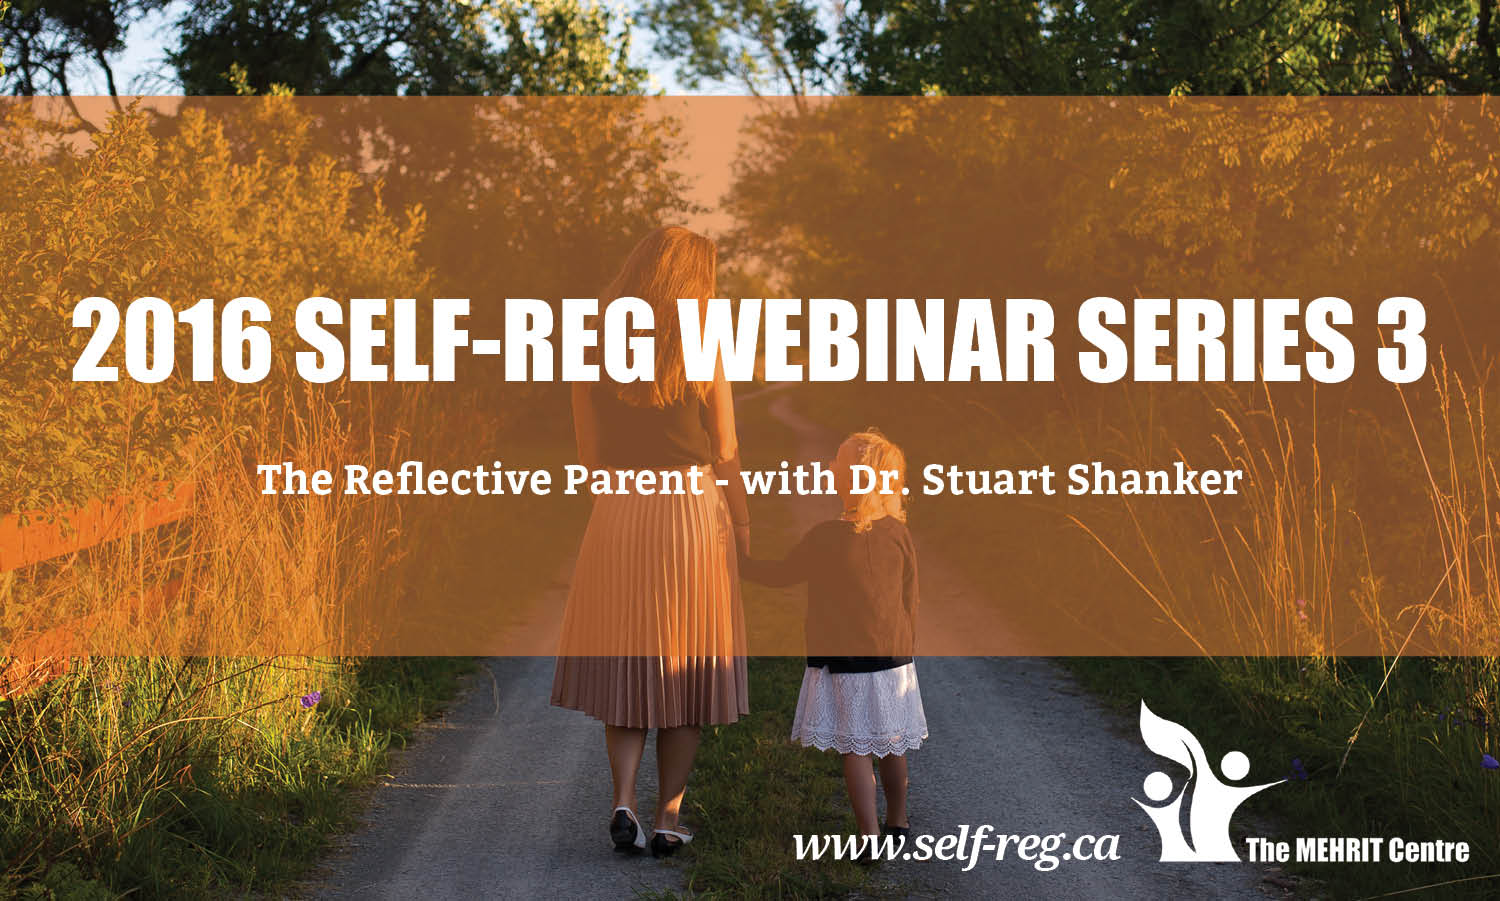 Self-Reg Webinars 2016 - Series 3 with Dr. Stuart Shanker: The Reflective Parent - Full series bundle of 5 webinars